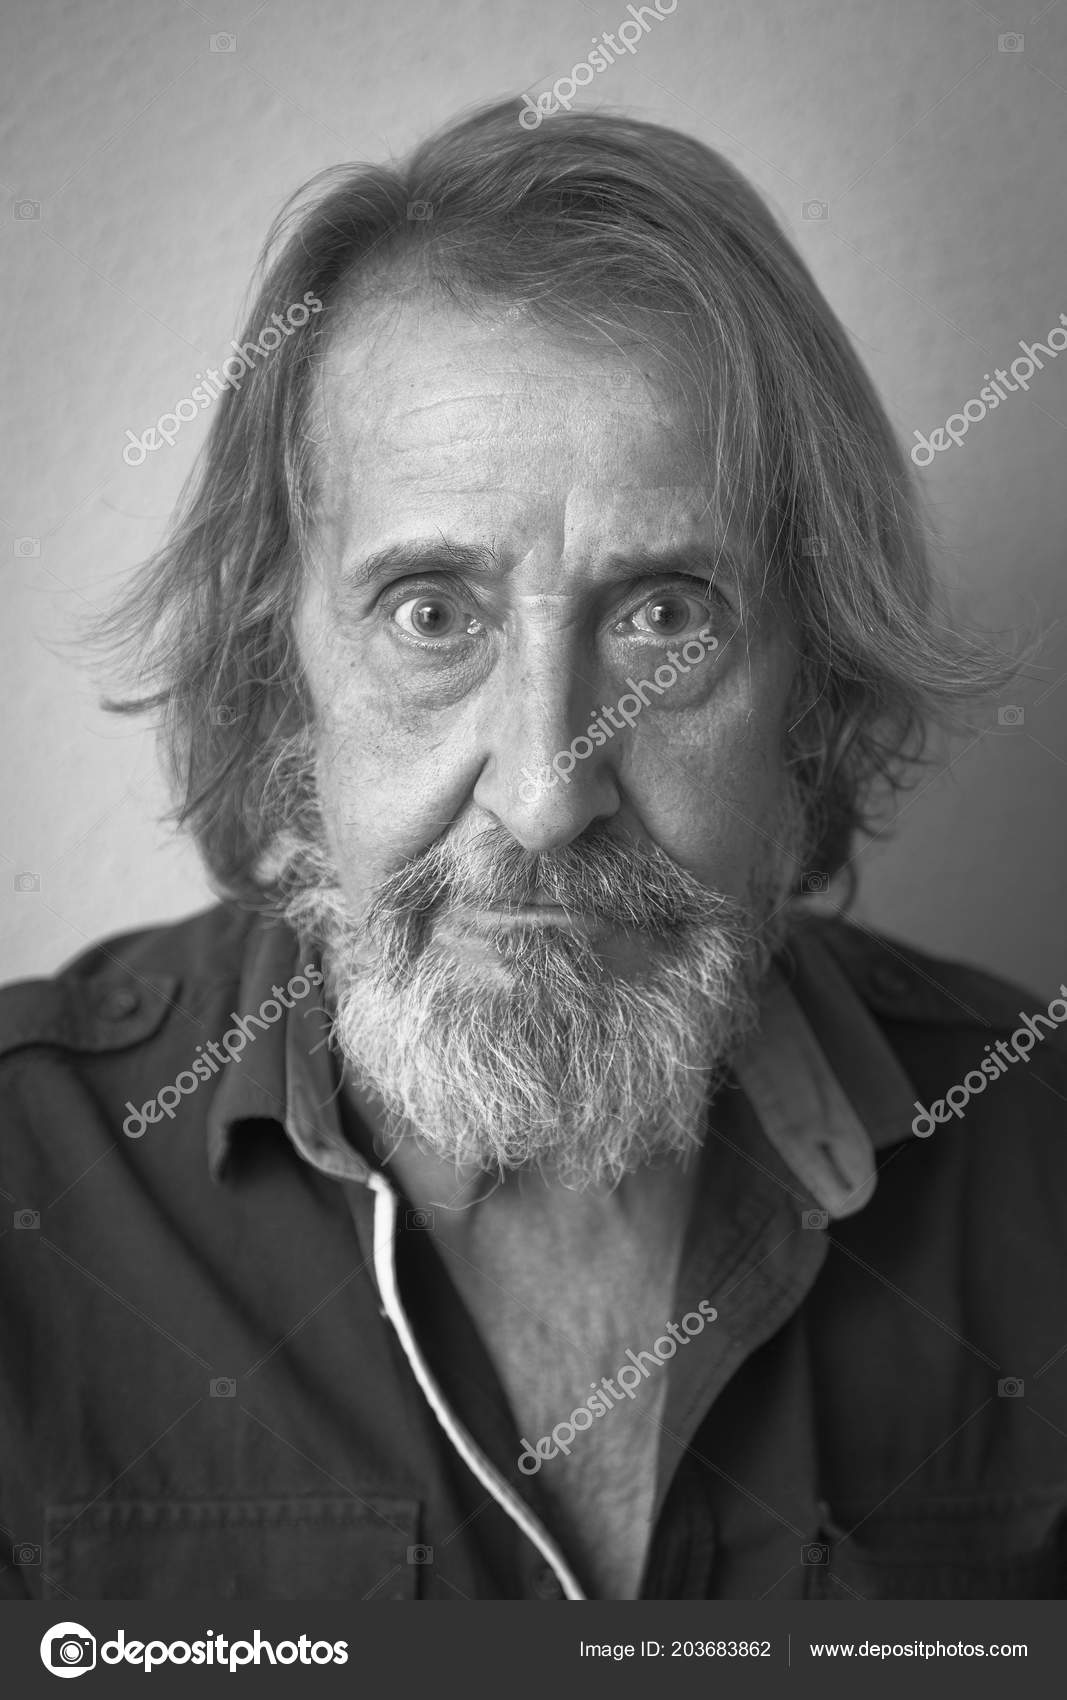 Black and white portrait of old man with long hair and beard photo by